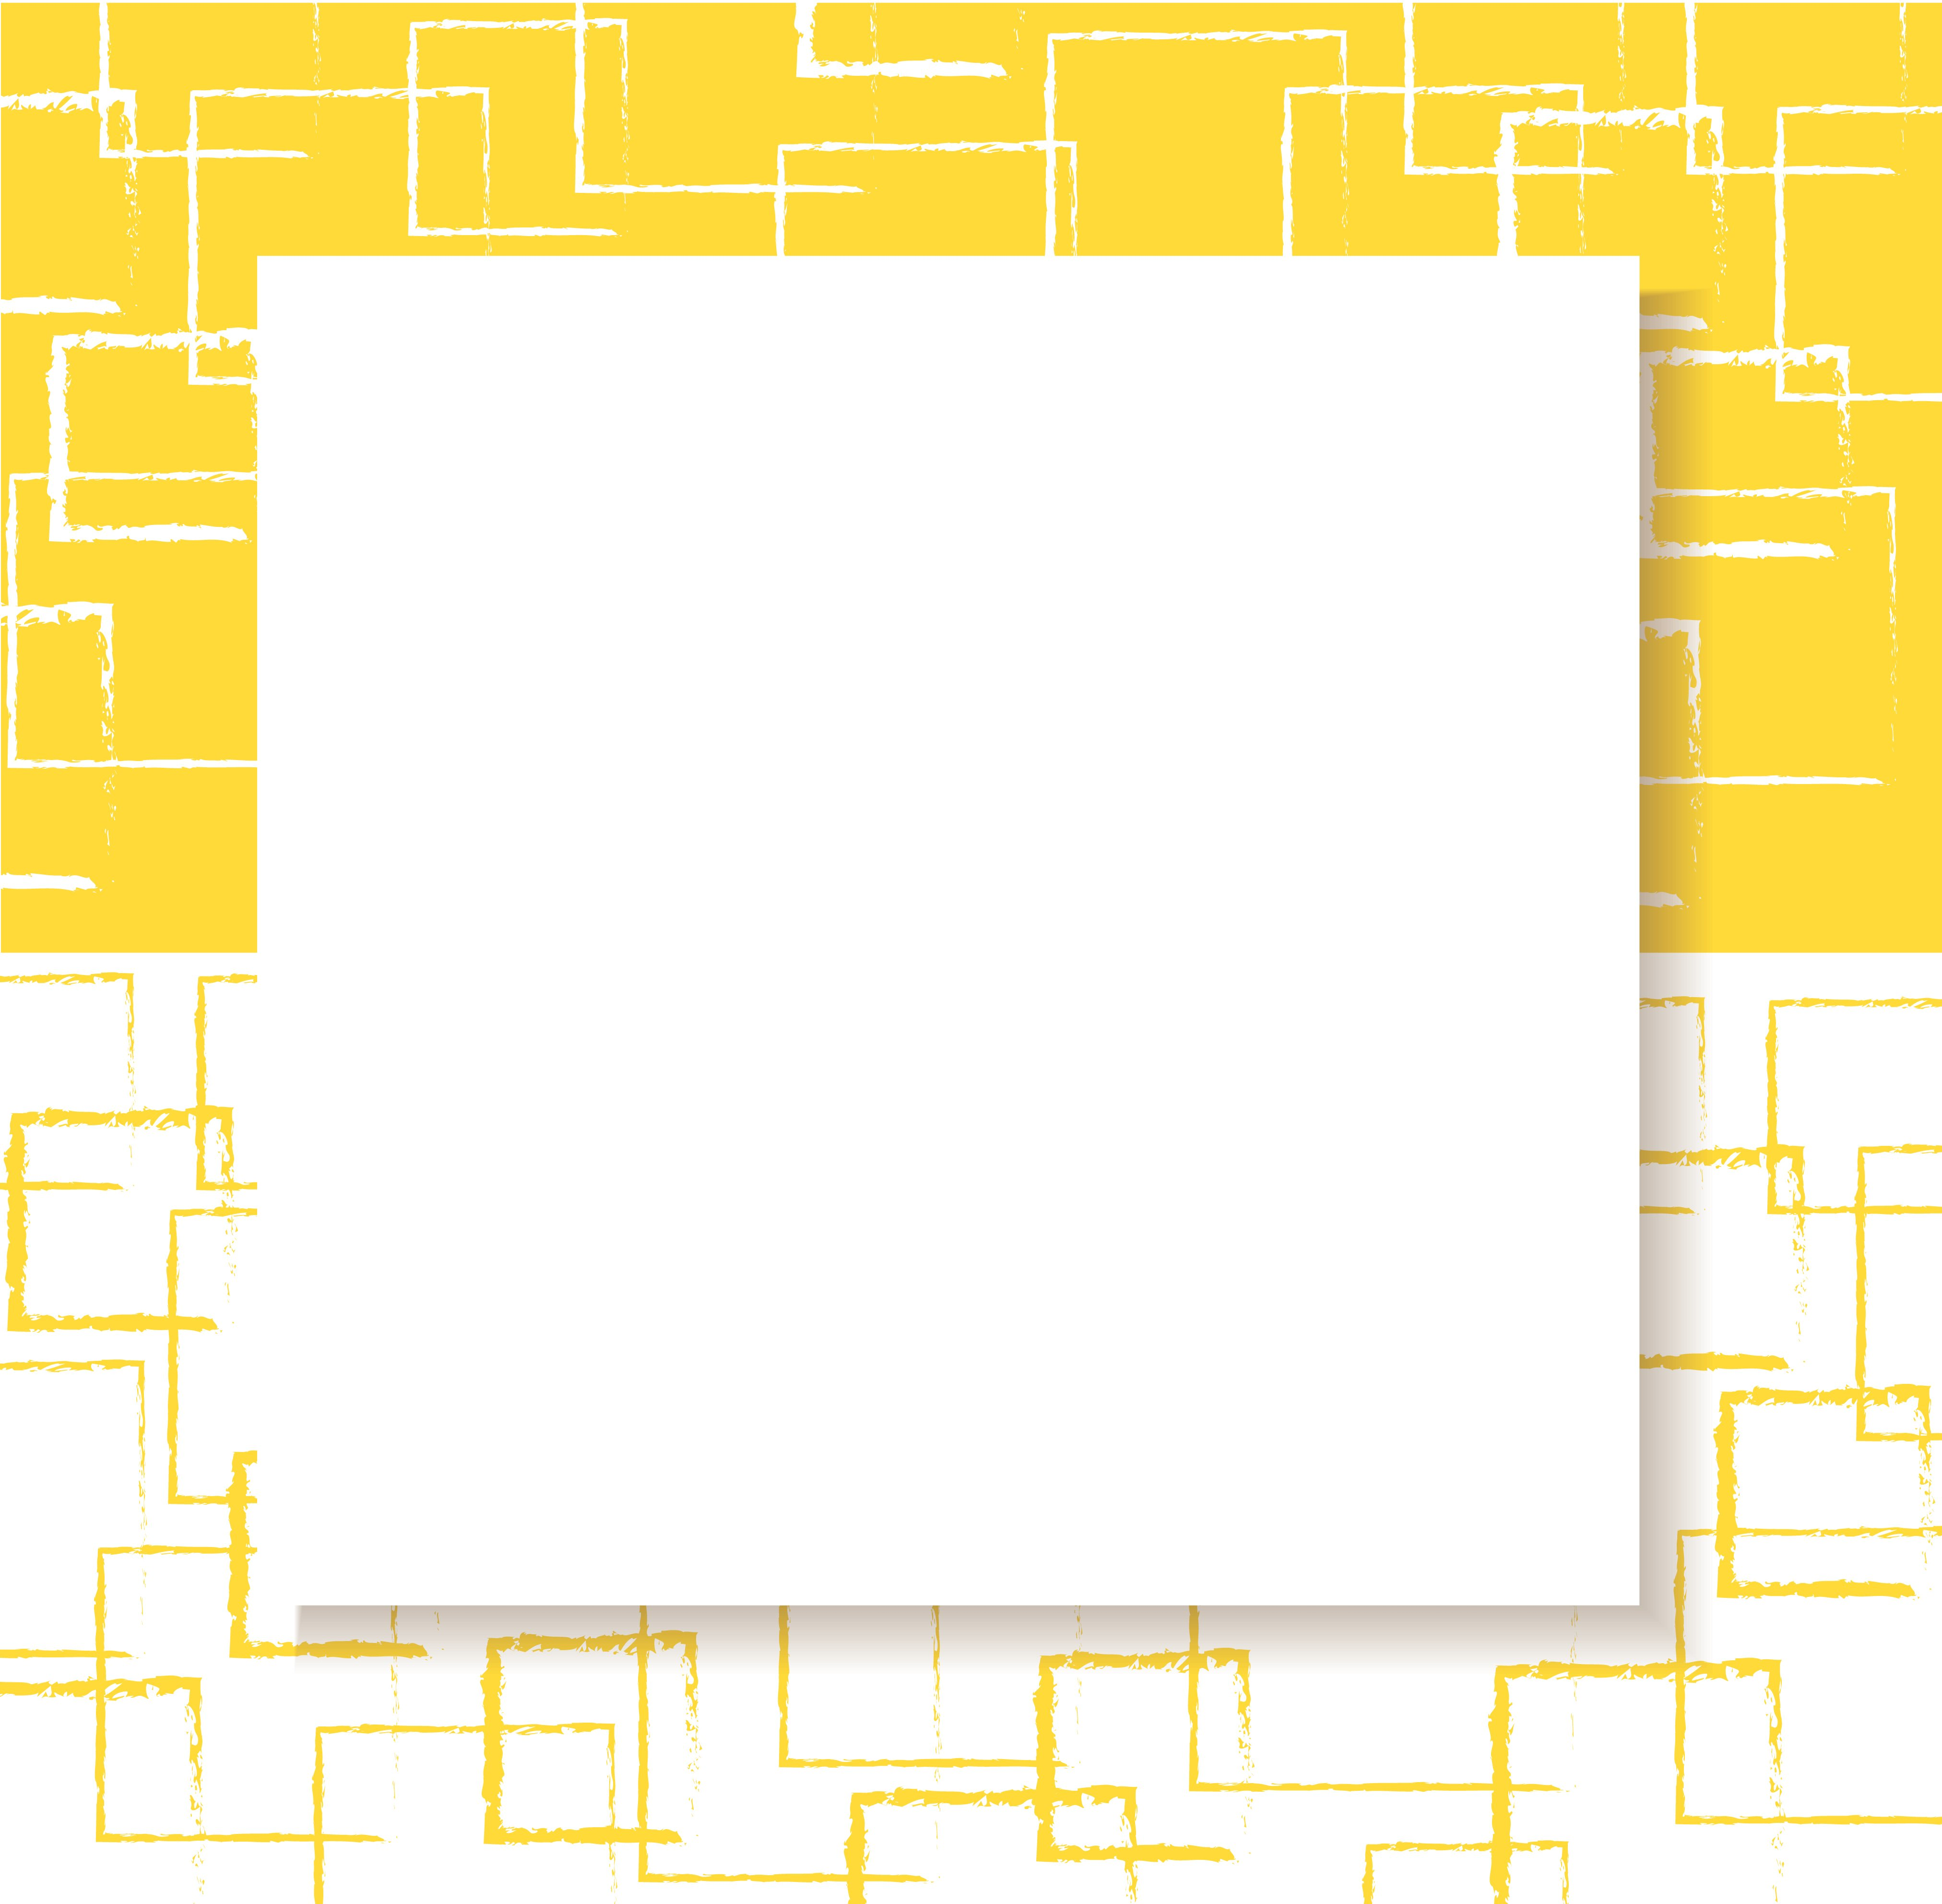 abstract yellow square background 538406 Vector Art at Vecteezy 4048x3968